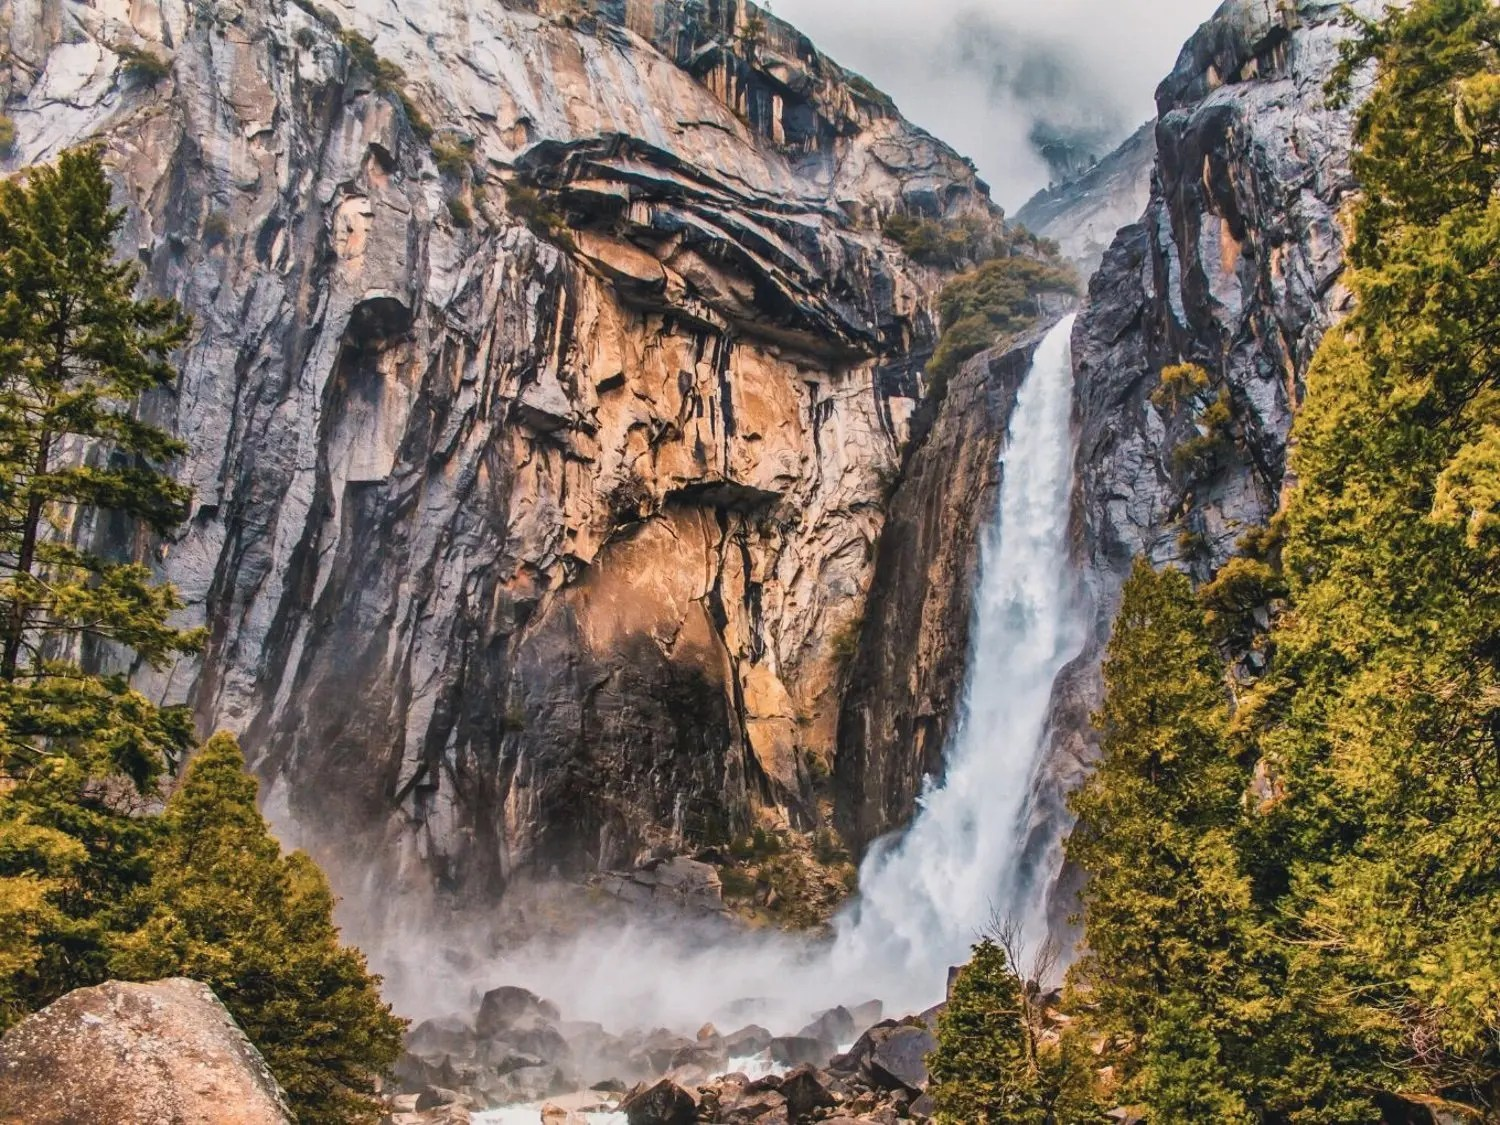 Lower Yosemite Fall The Ultimate Guide To Yosemite National Park